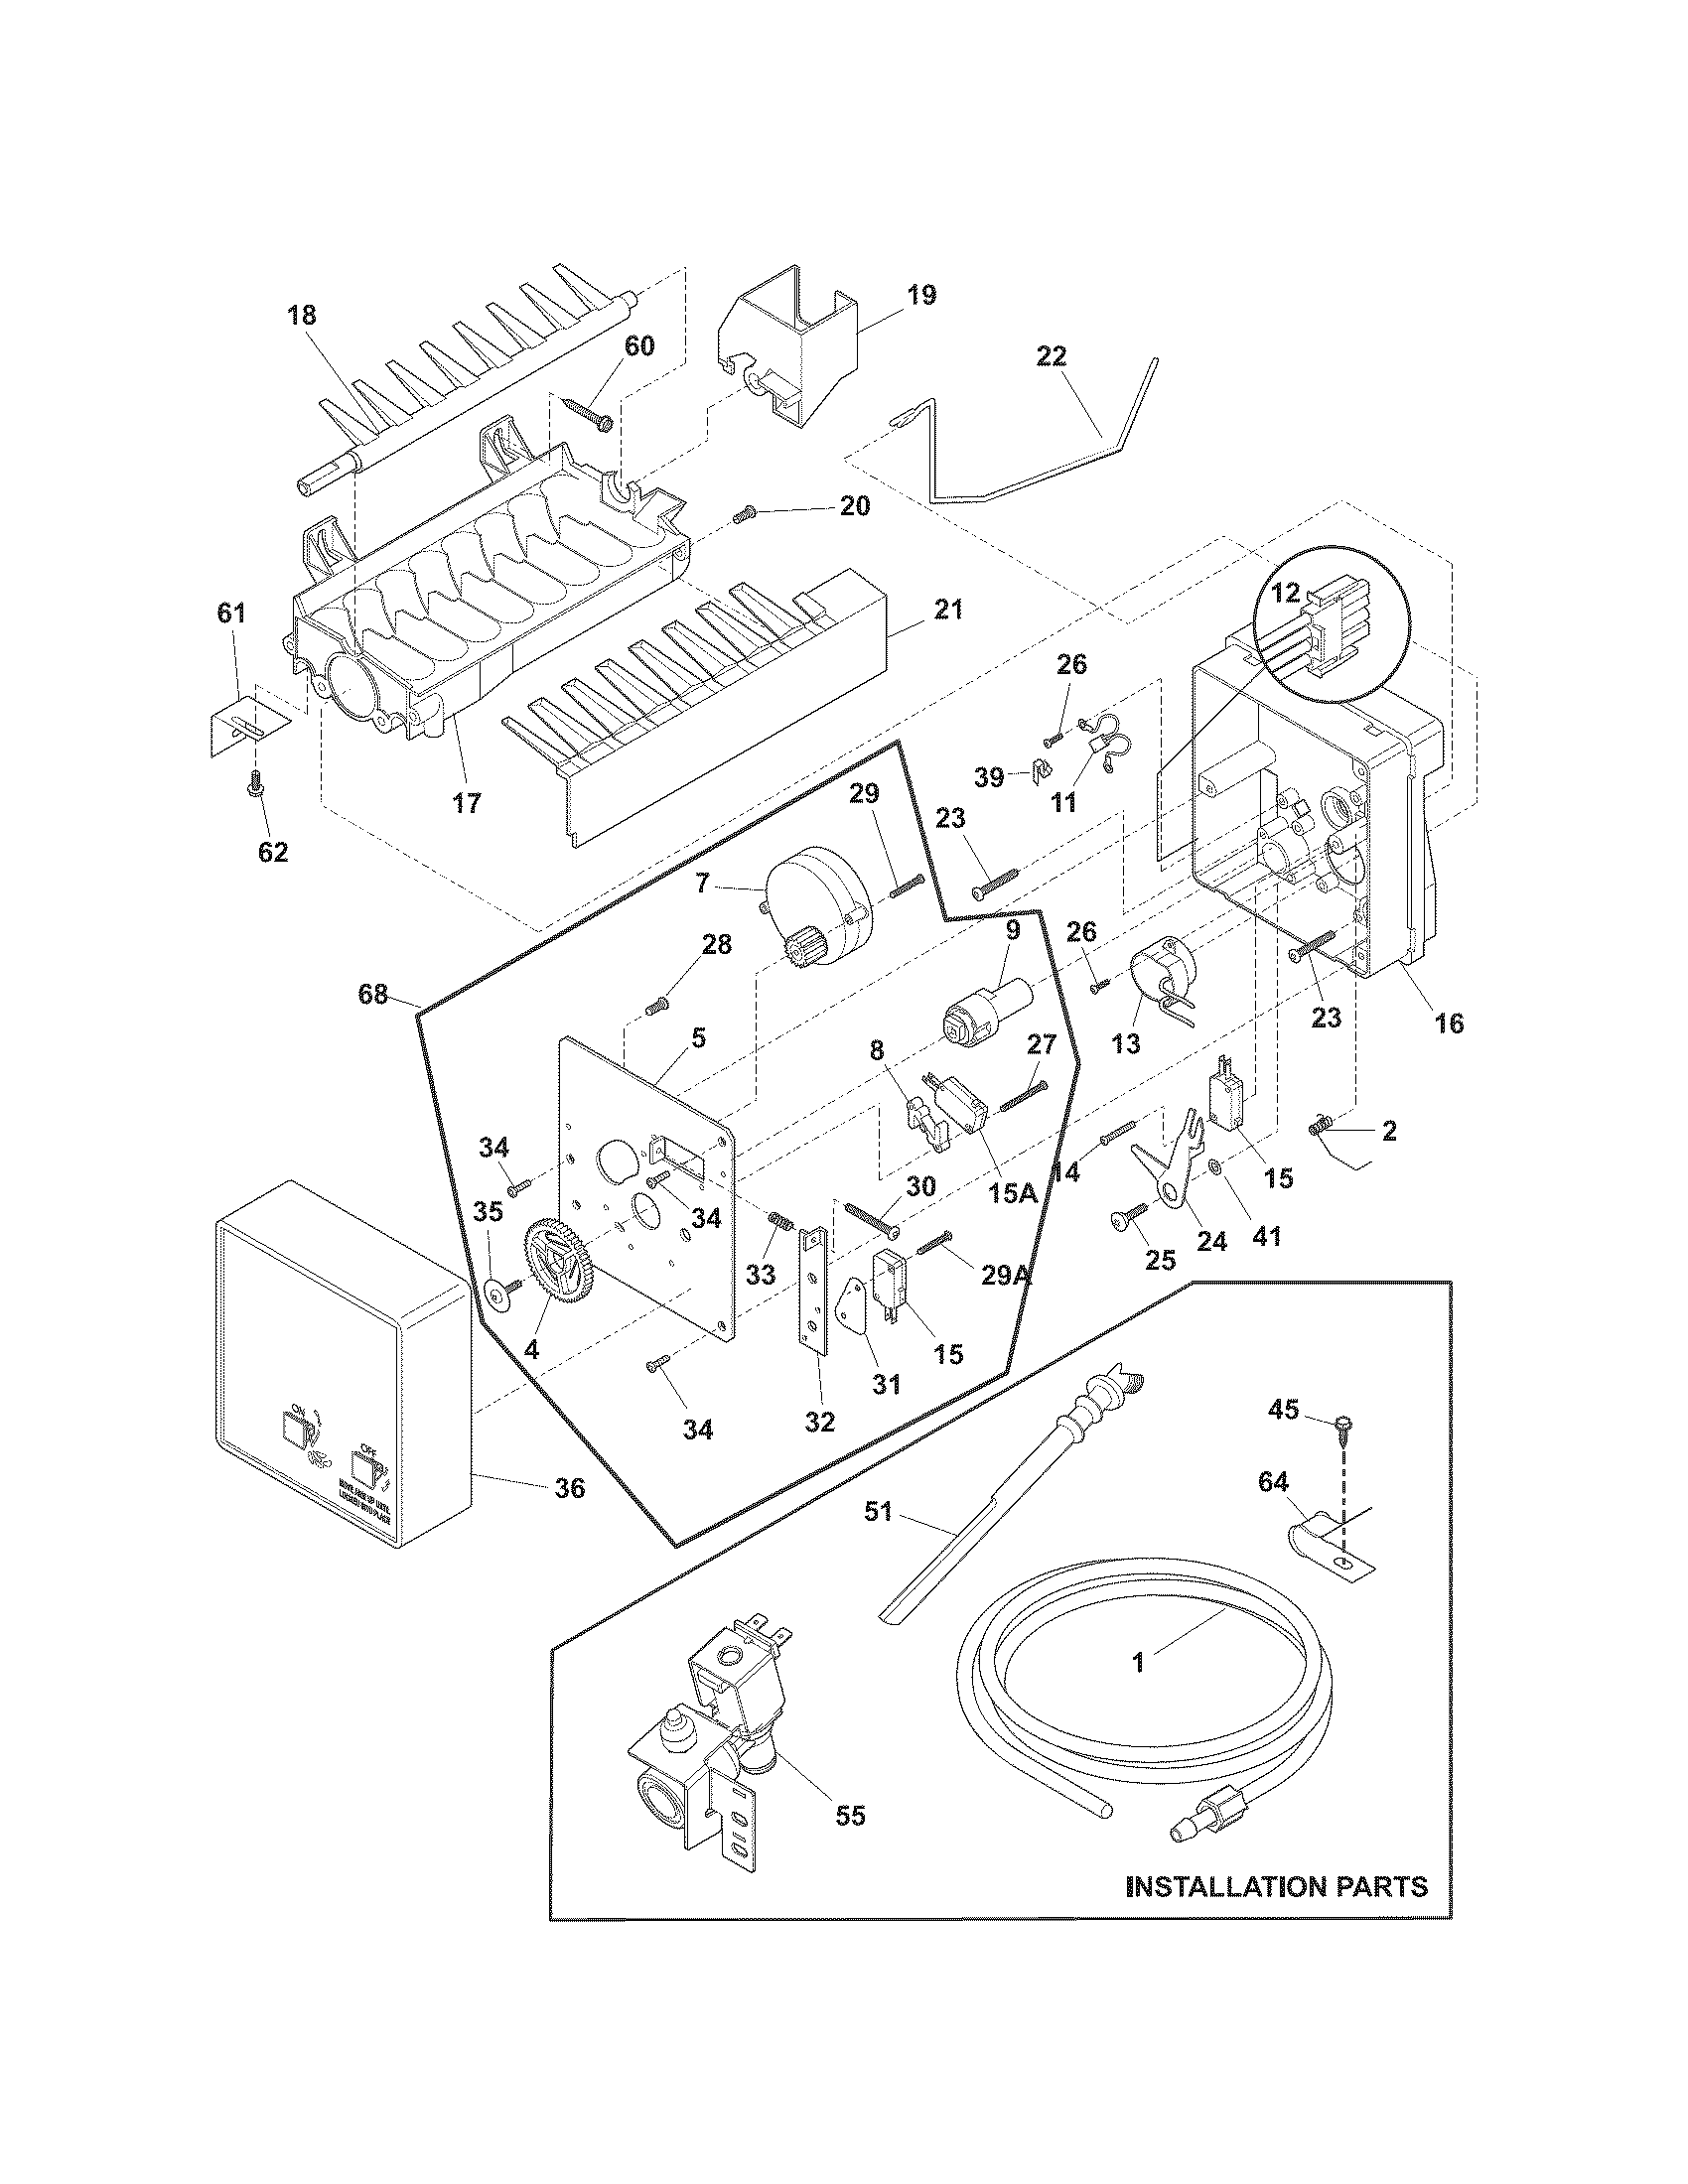 Kenmore model 25378822013 top-mount refrigerator genuine parts